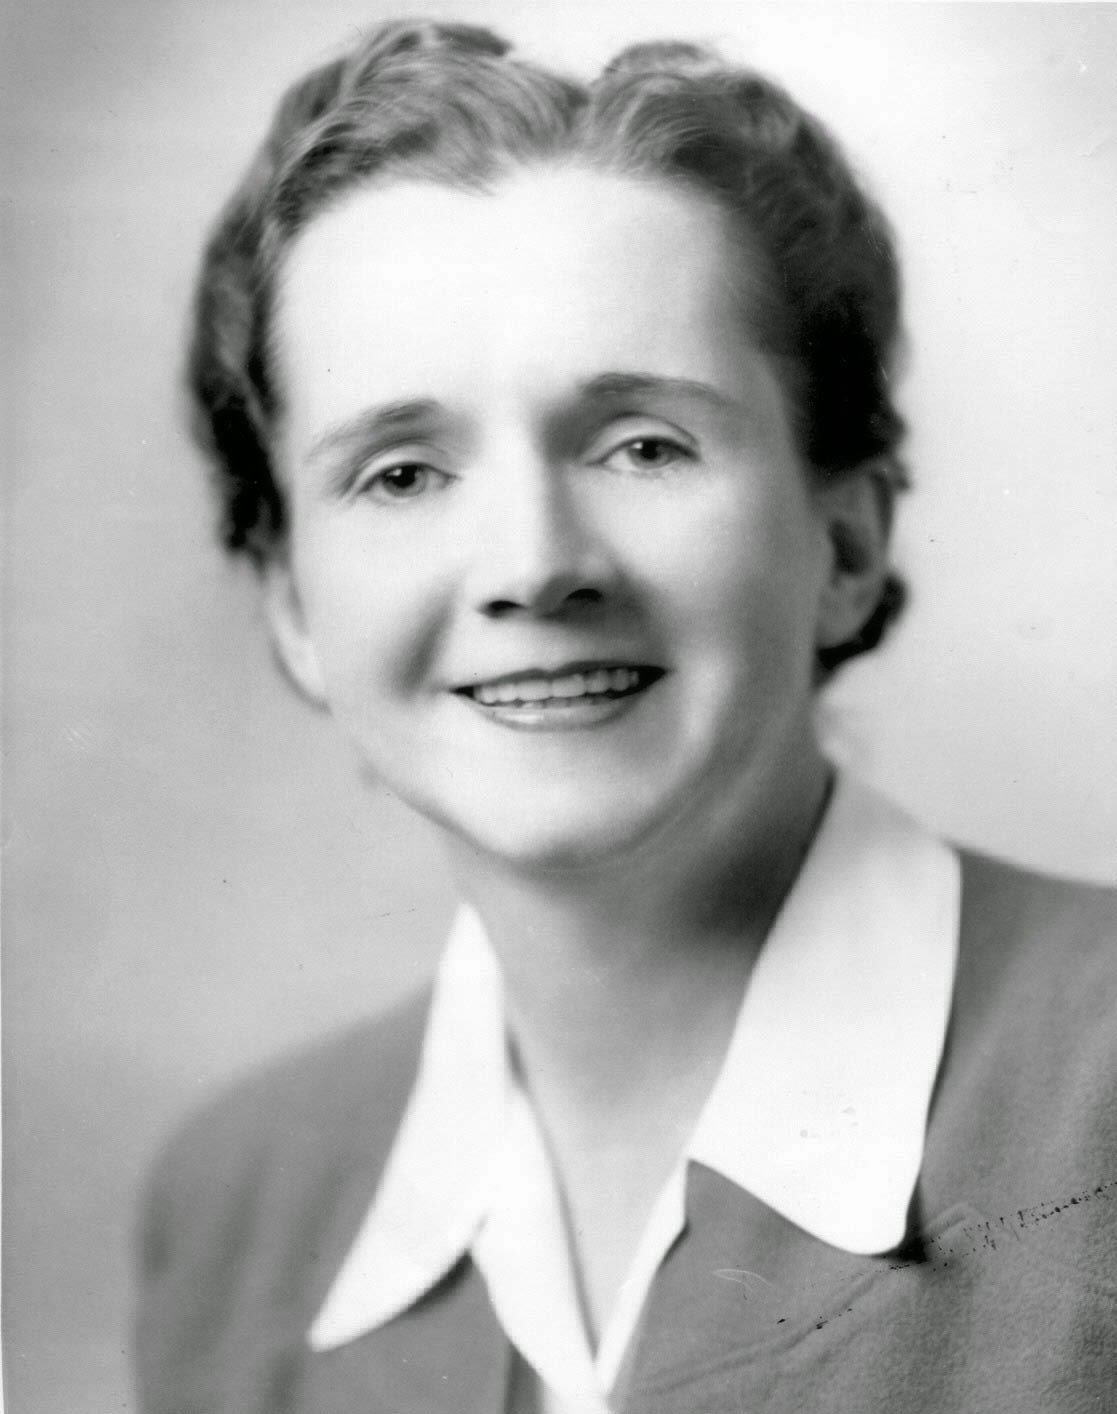 RACHEL CARSON (1907-1964) ENVIRONMENTALIST - AUTHOR